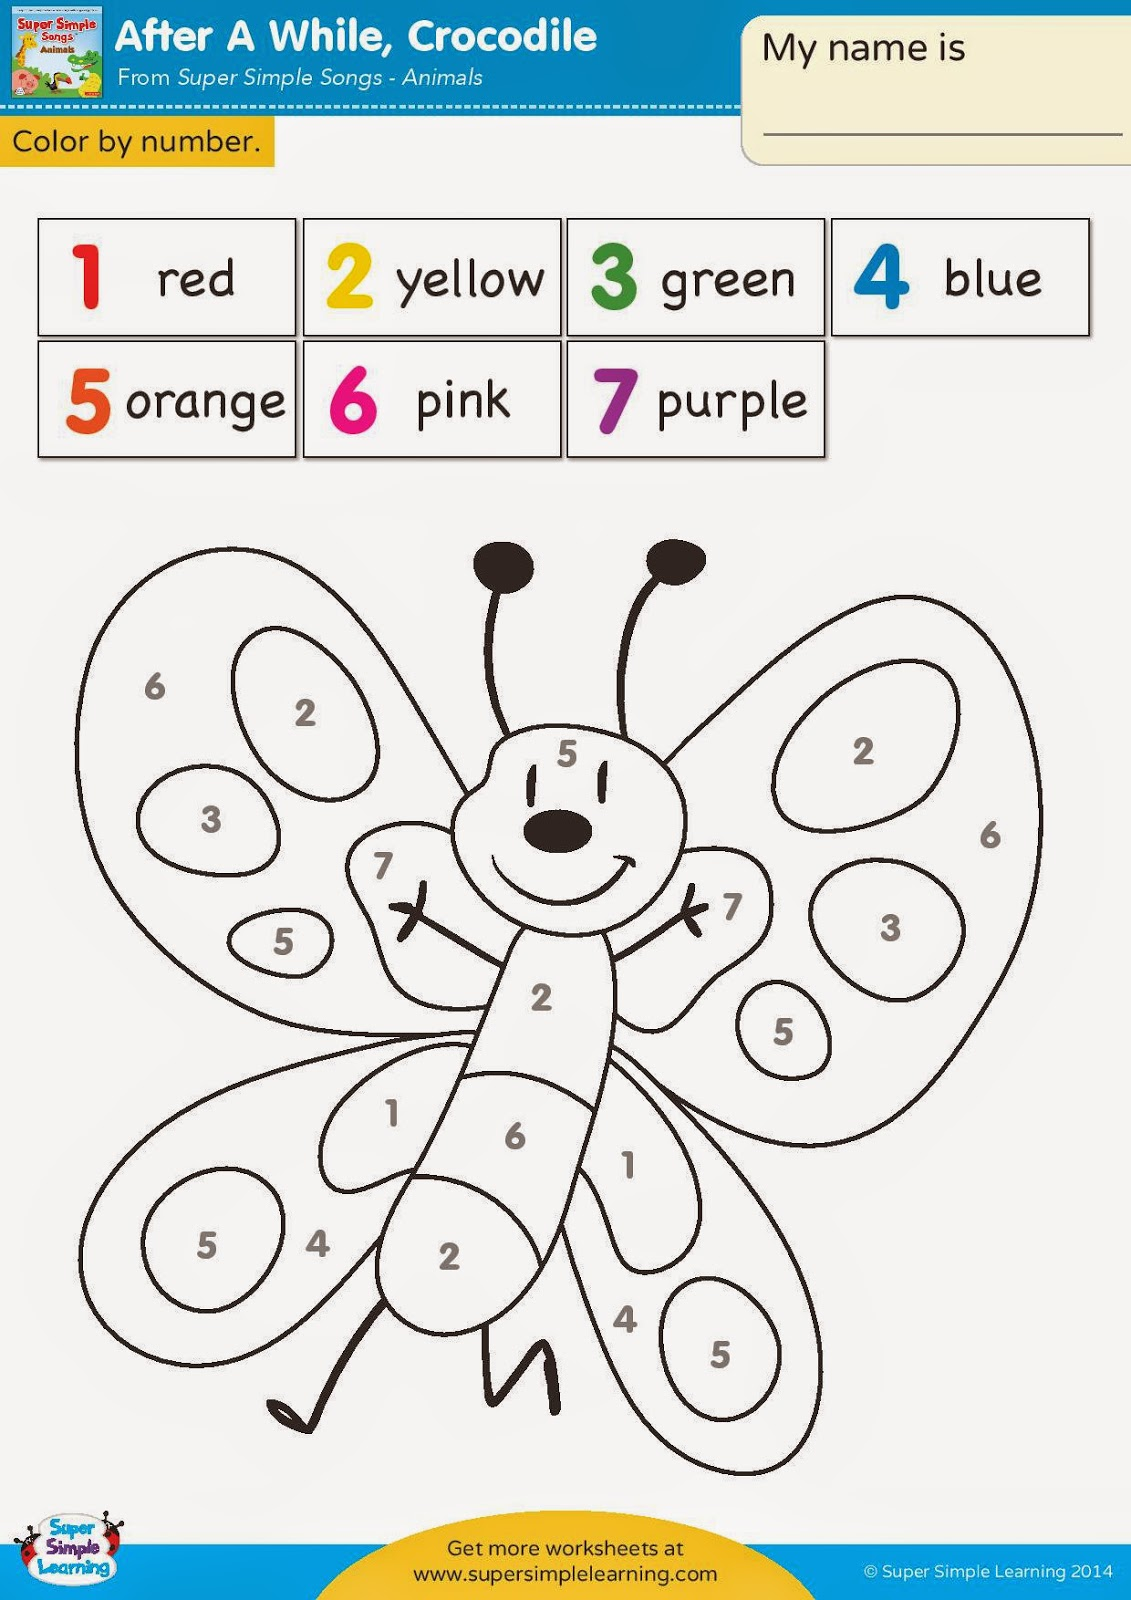 Count By Number Coloring Pages - Free Coloring Pages